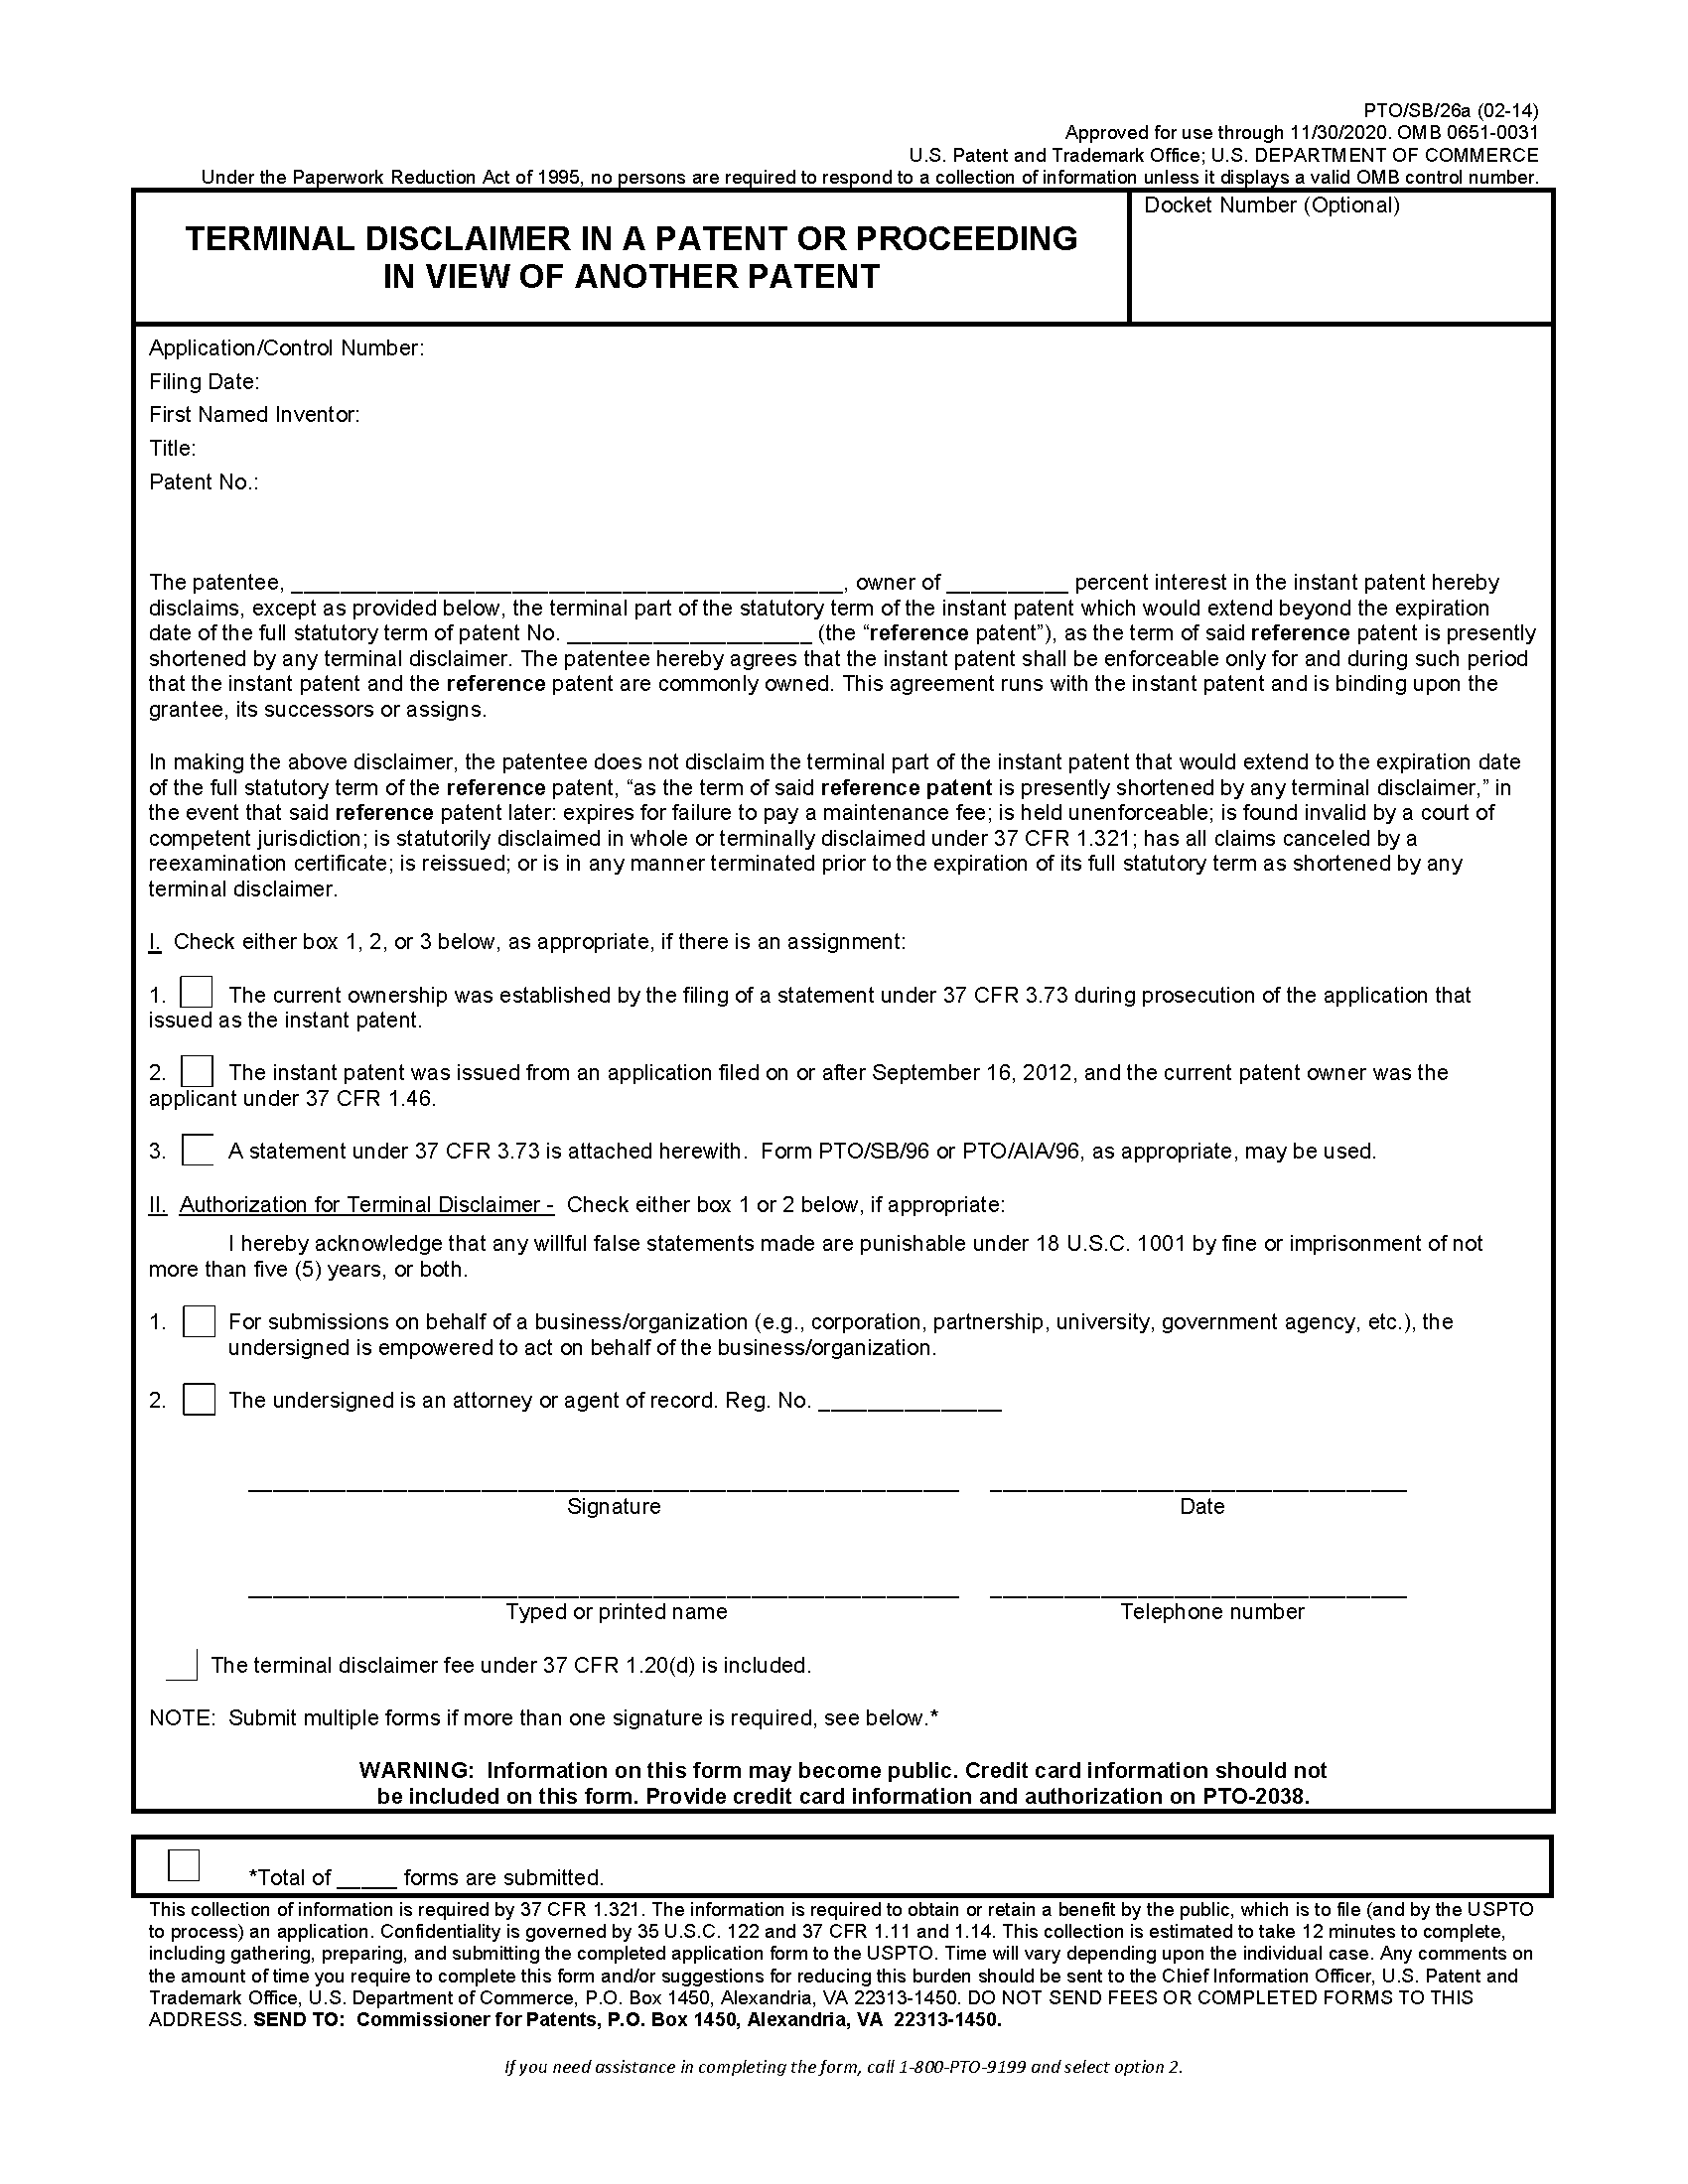 uspto patent assignment